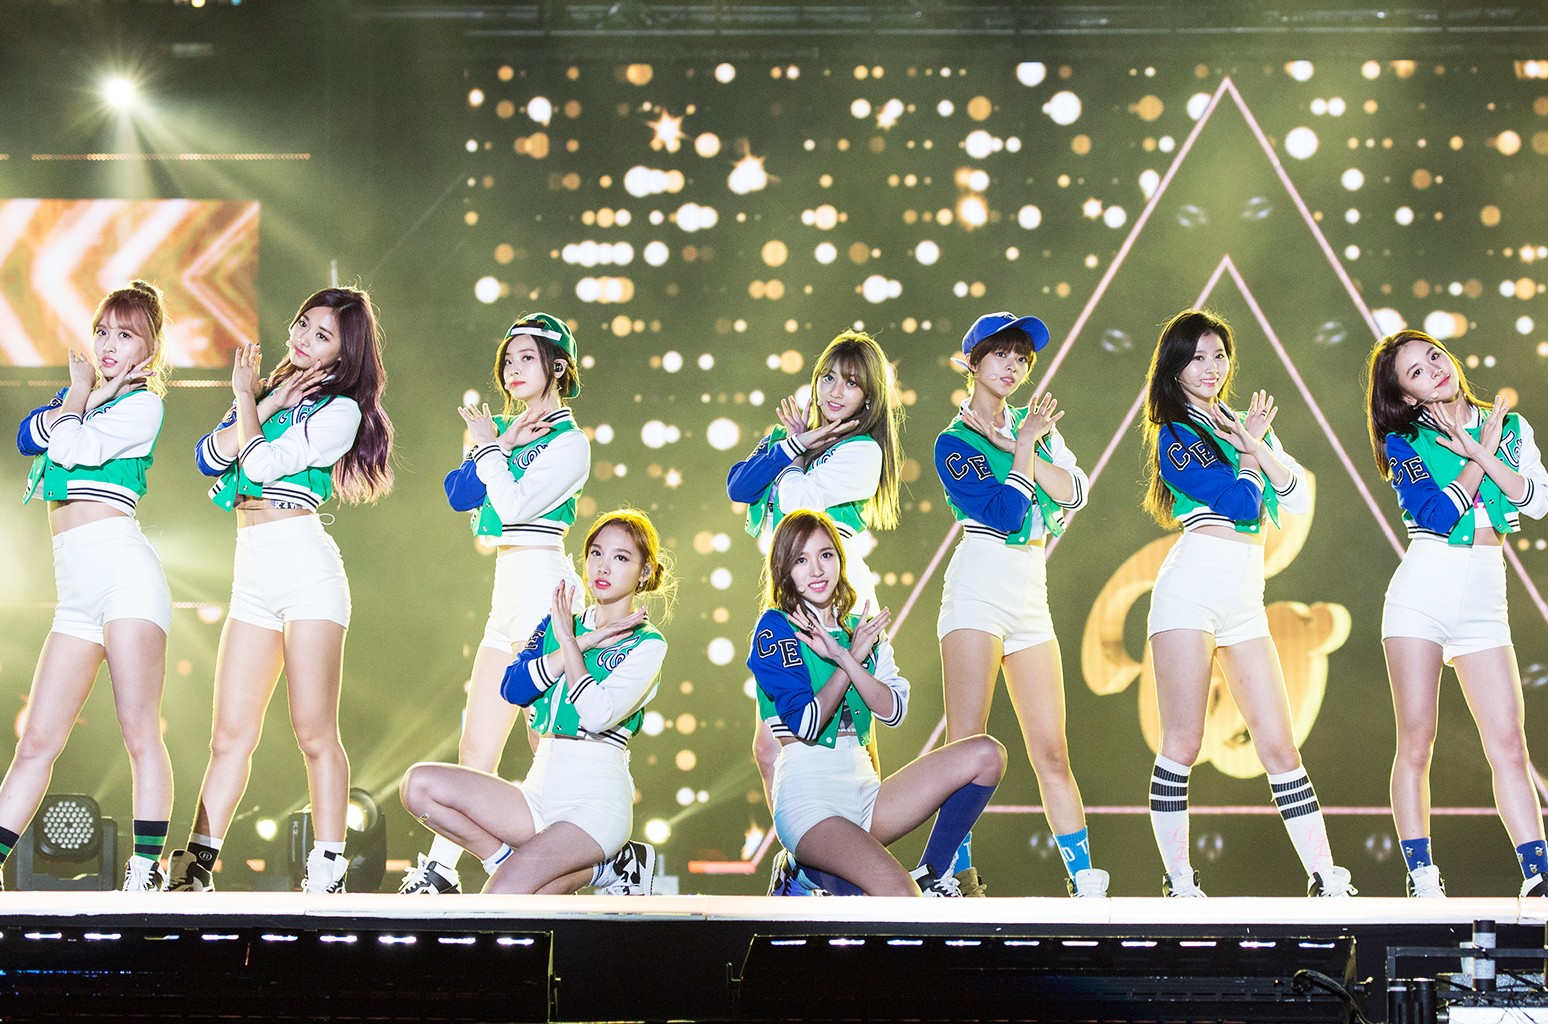 Twice perform in 2016